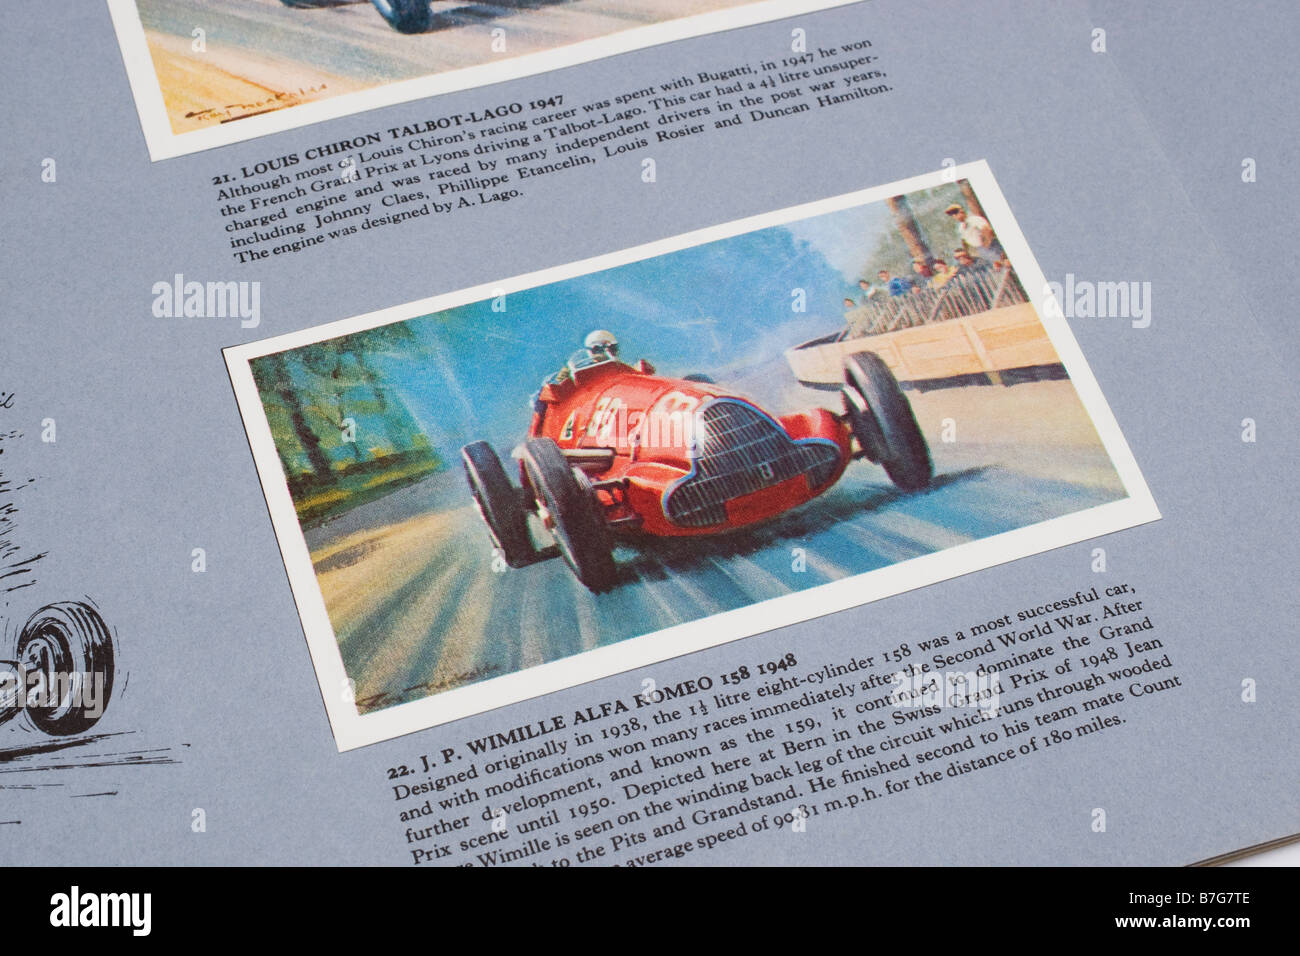 Picture card of J.P.Wimille in a  Alfa Romeo 158 from the Story of Grand Prix Motor Racing issued by Mobile Petroleum - Stock Image